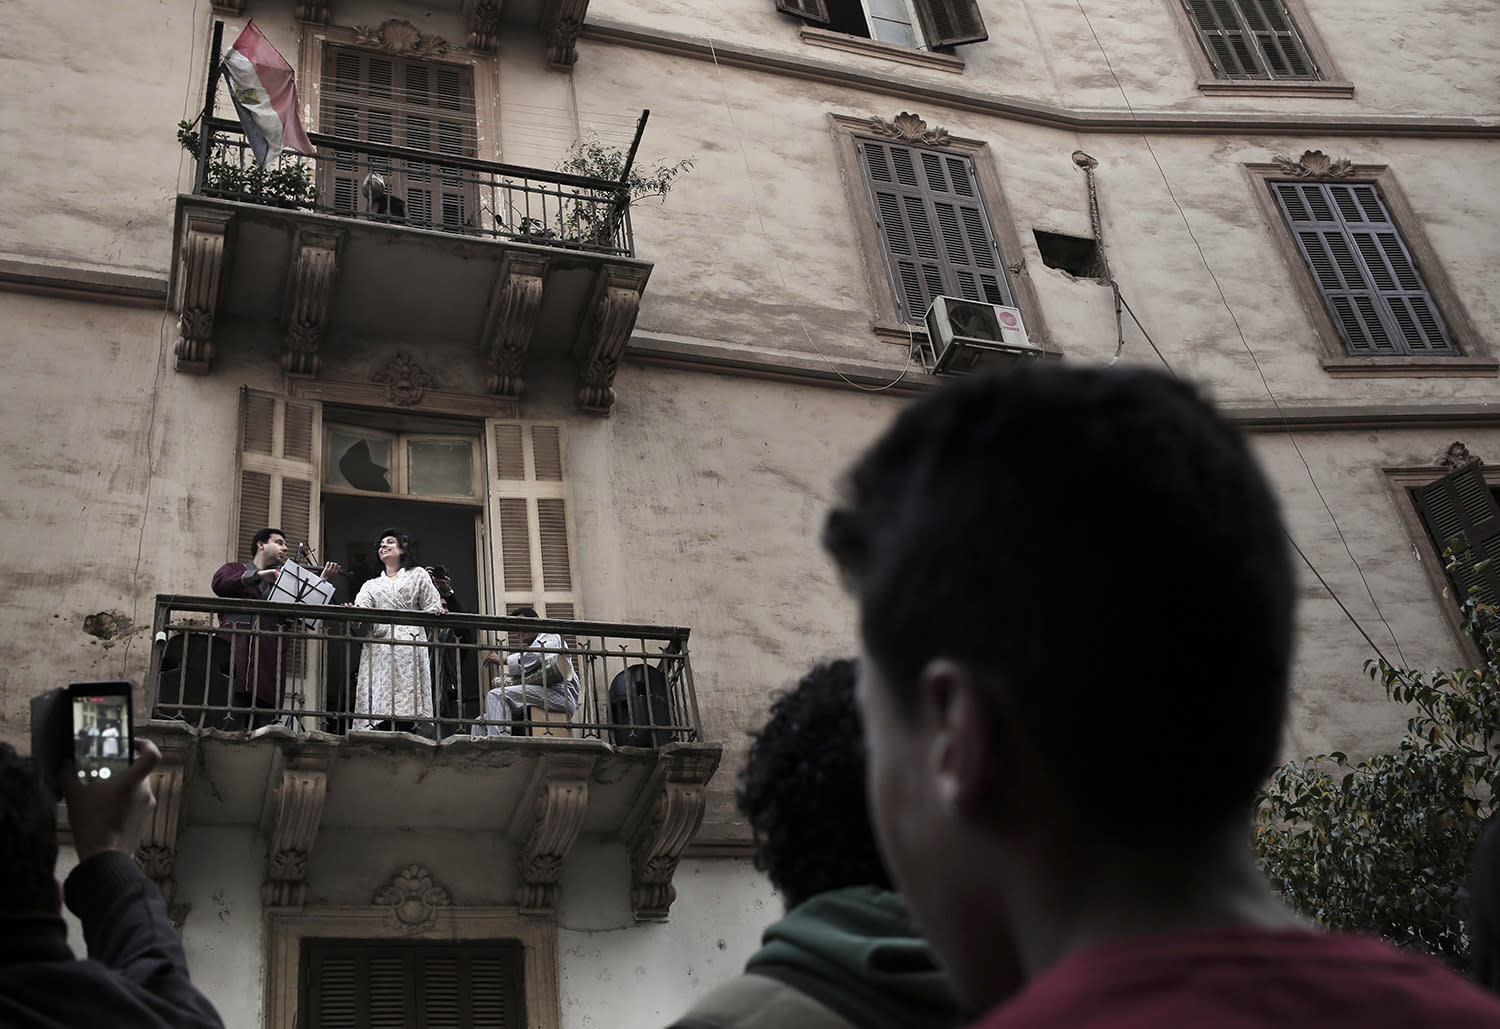 <p>An opera singer sings on a balcony, part of a performance tour by Mahatat for contemporary arts, in downtown Cairo, Egypt, Dec. 10, 2016. Mahatat for contemporary arts, a social and cultural enterprise based in Cairo, transforms public spaces to expose the arts in Egypt. (Photo: Nariman El-Mofty/AP) </p>